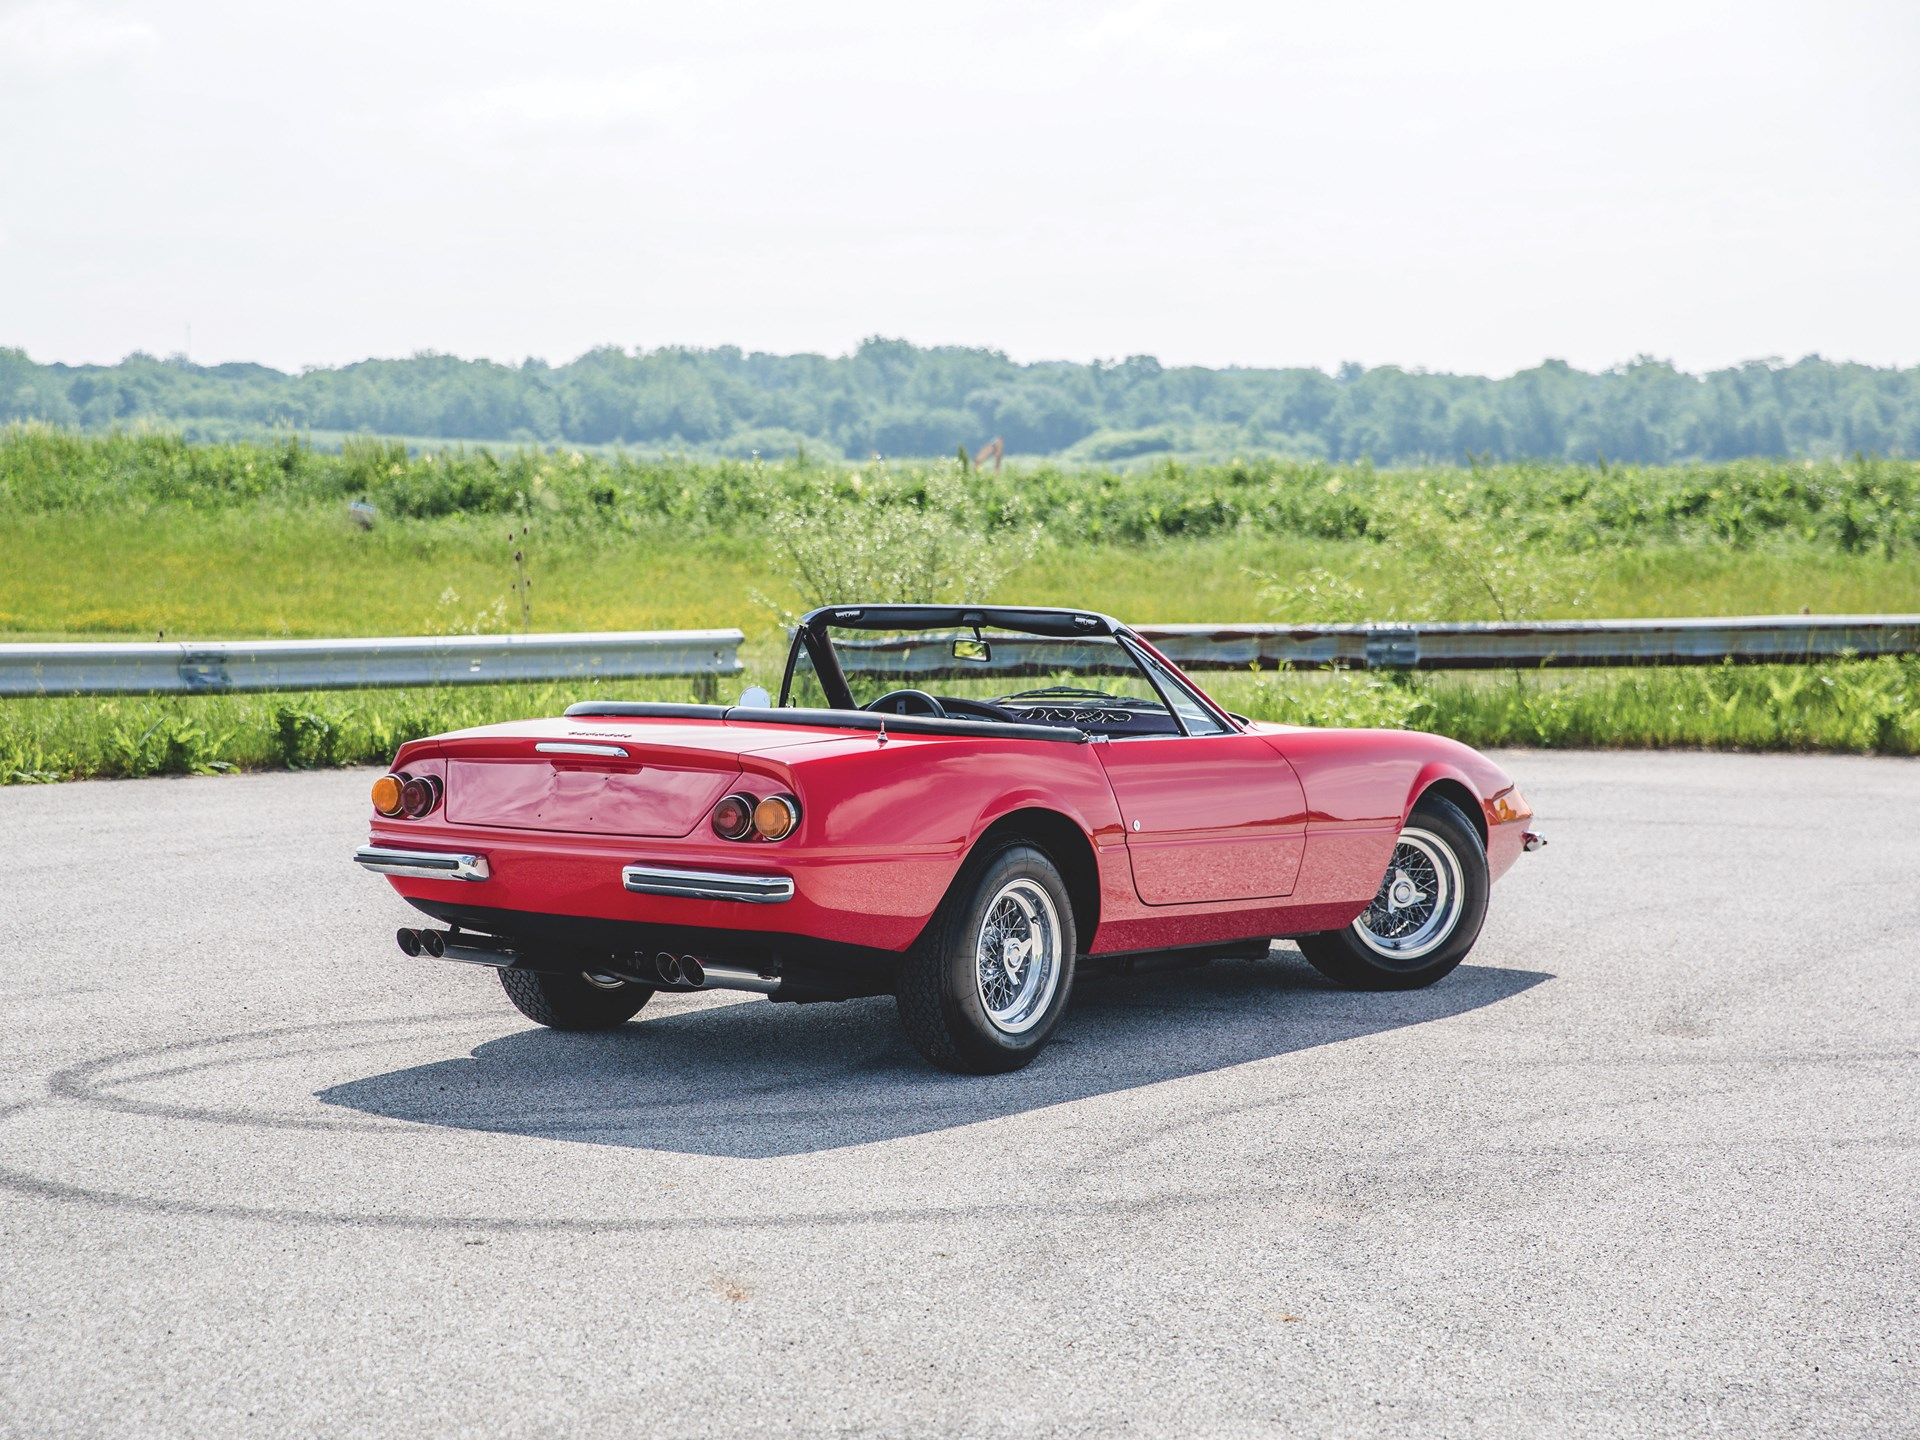 1971 Ferrari 365 GTB/4 Daytona Spider Conversion